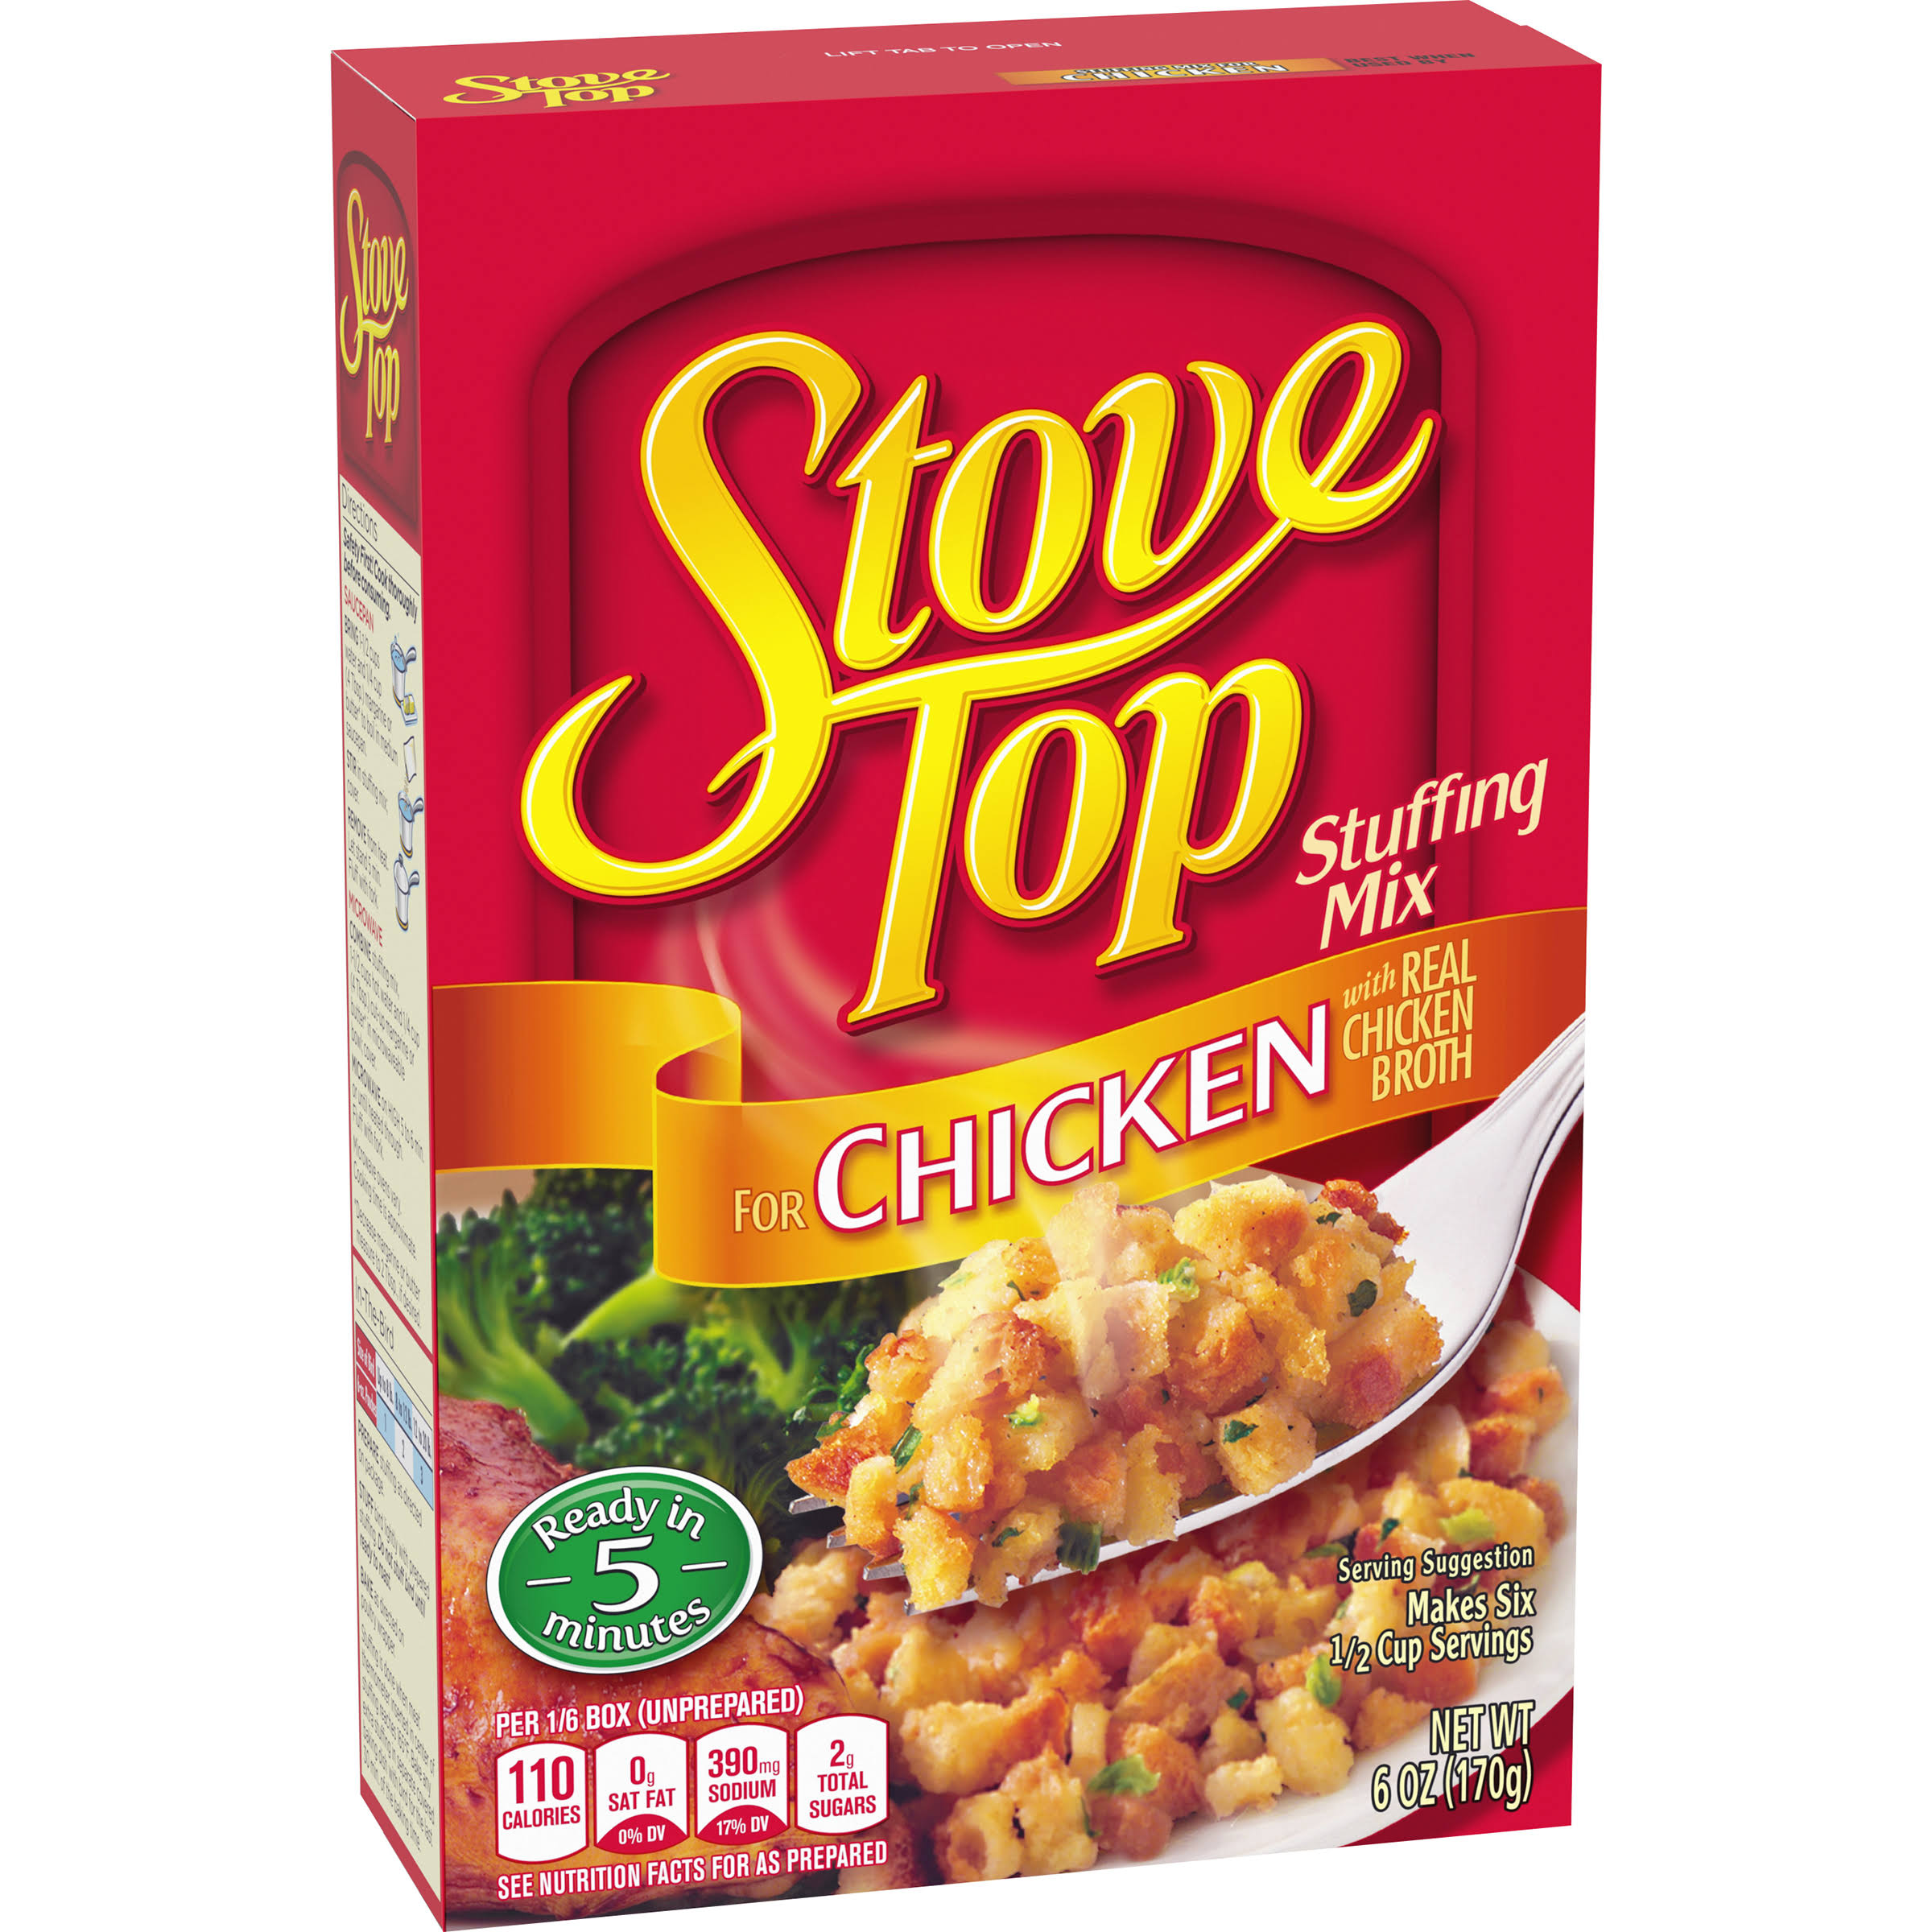 Kraft Stove Top Stuffing Mix - for Chicken, 170g